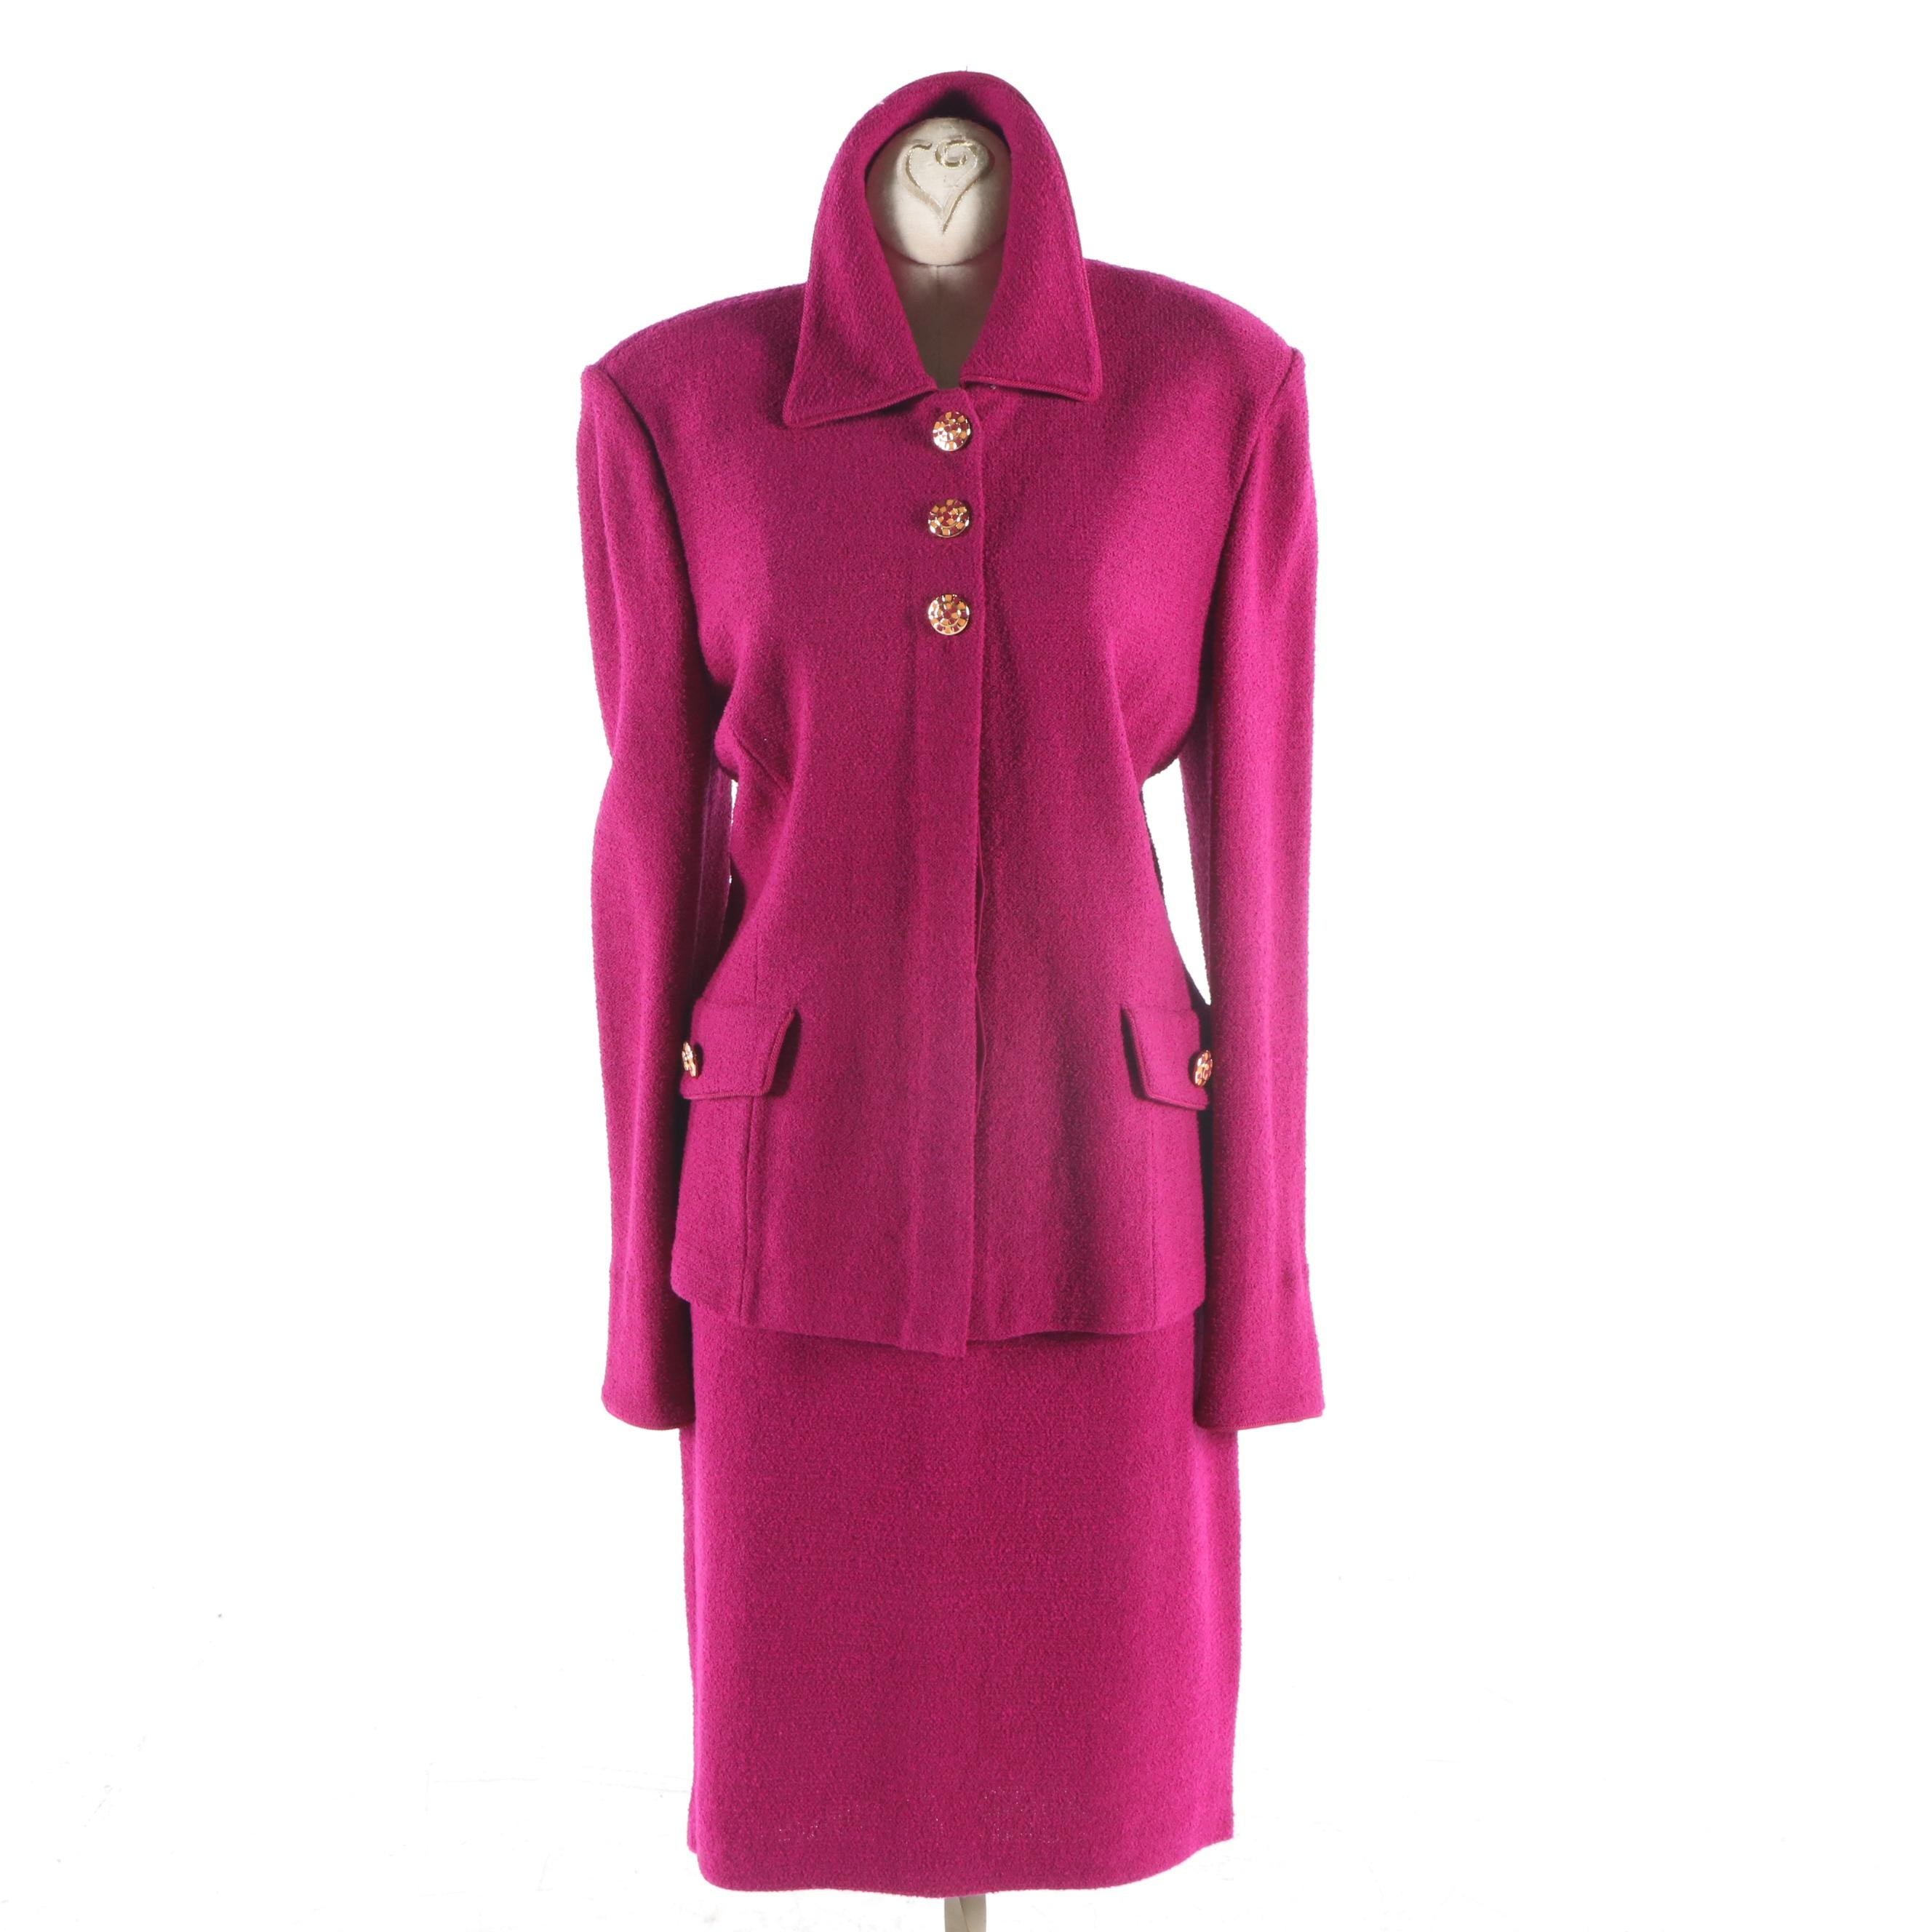 Women's St. John Collection Fuchsia Two-Piece Skirt Suit